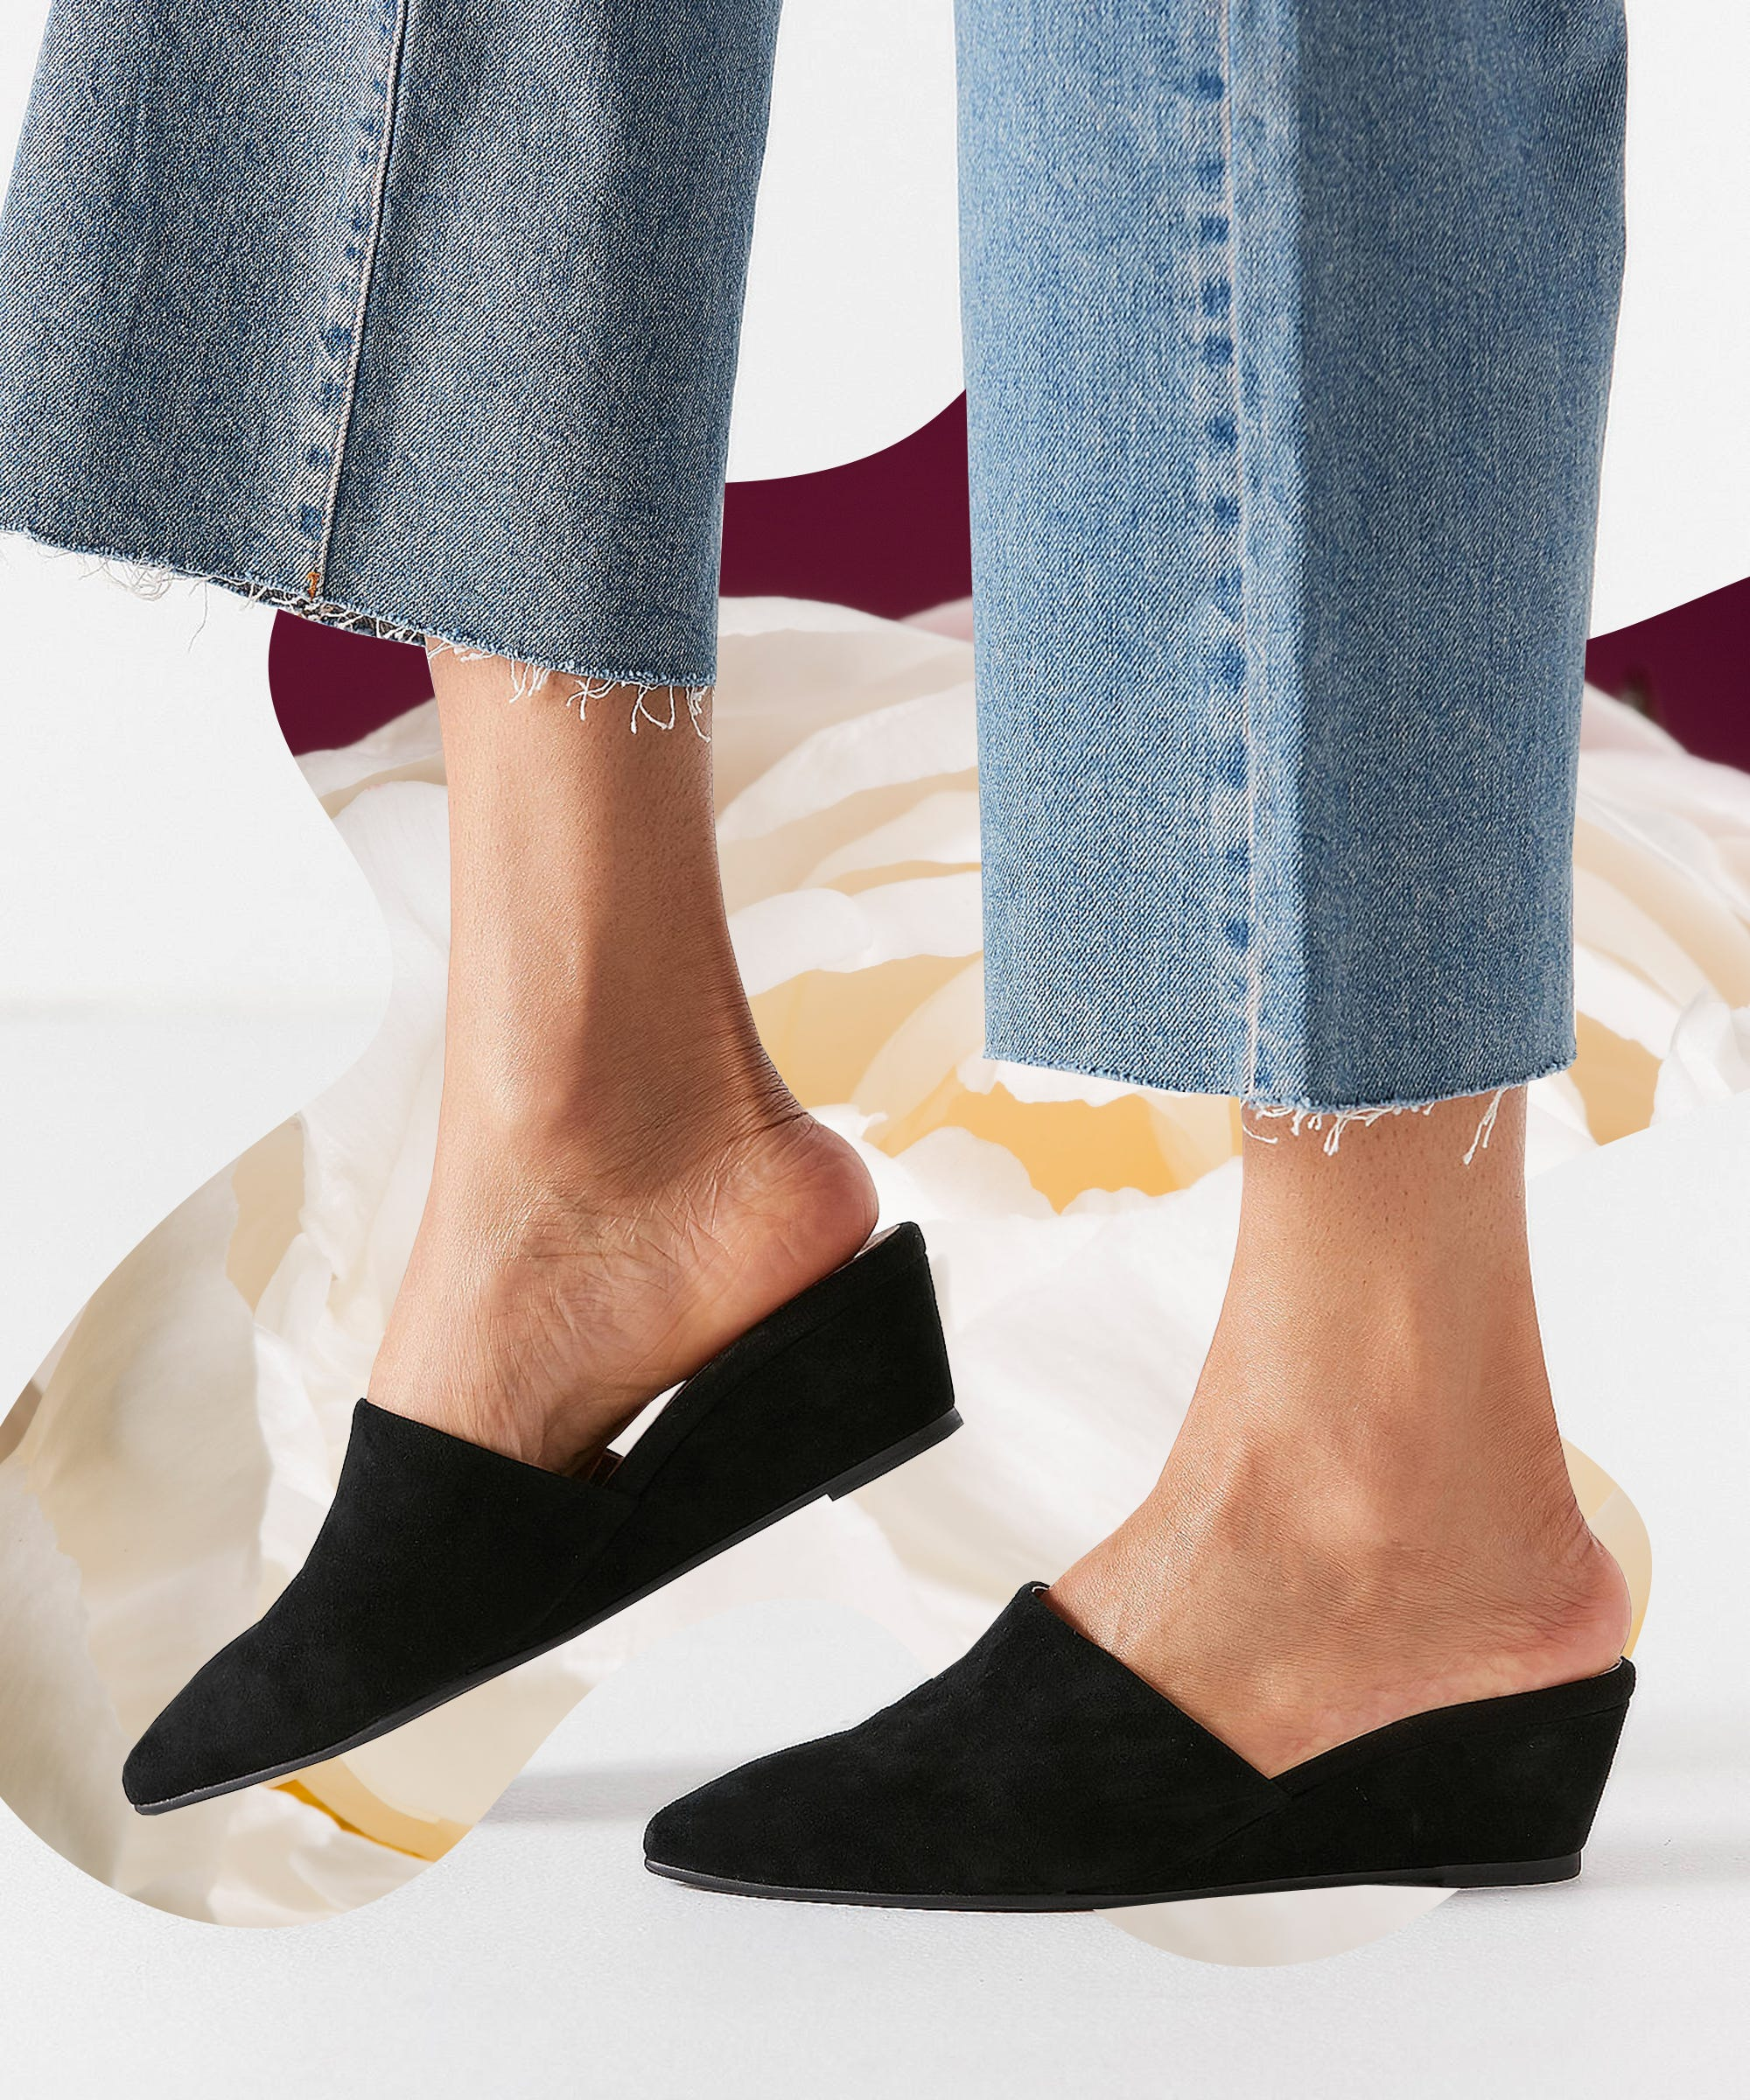 a shop brand null comforter sandal comfortable chinese wedge wedges most meet laundry slingback up